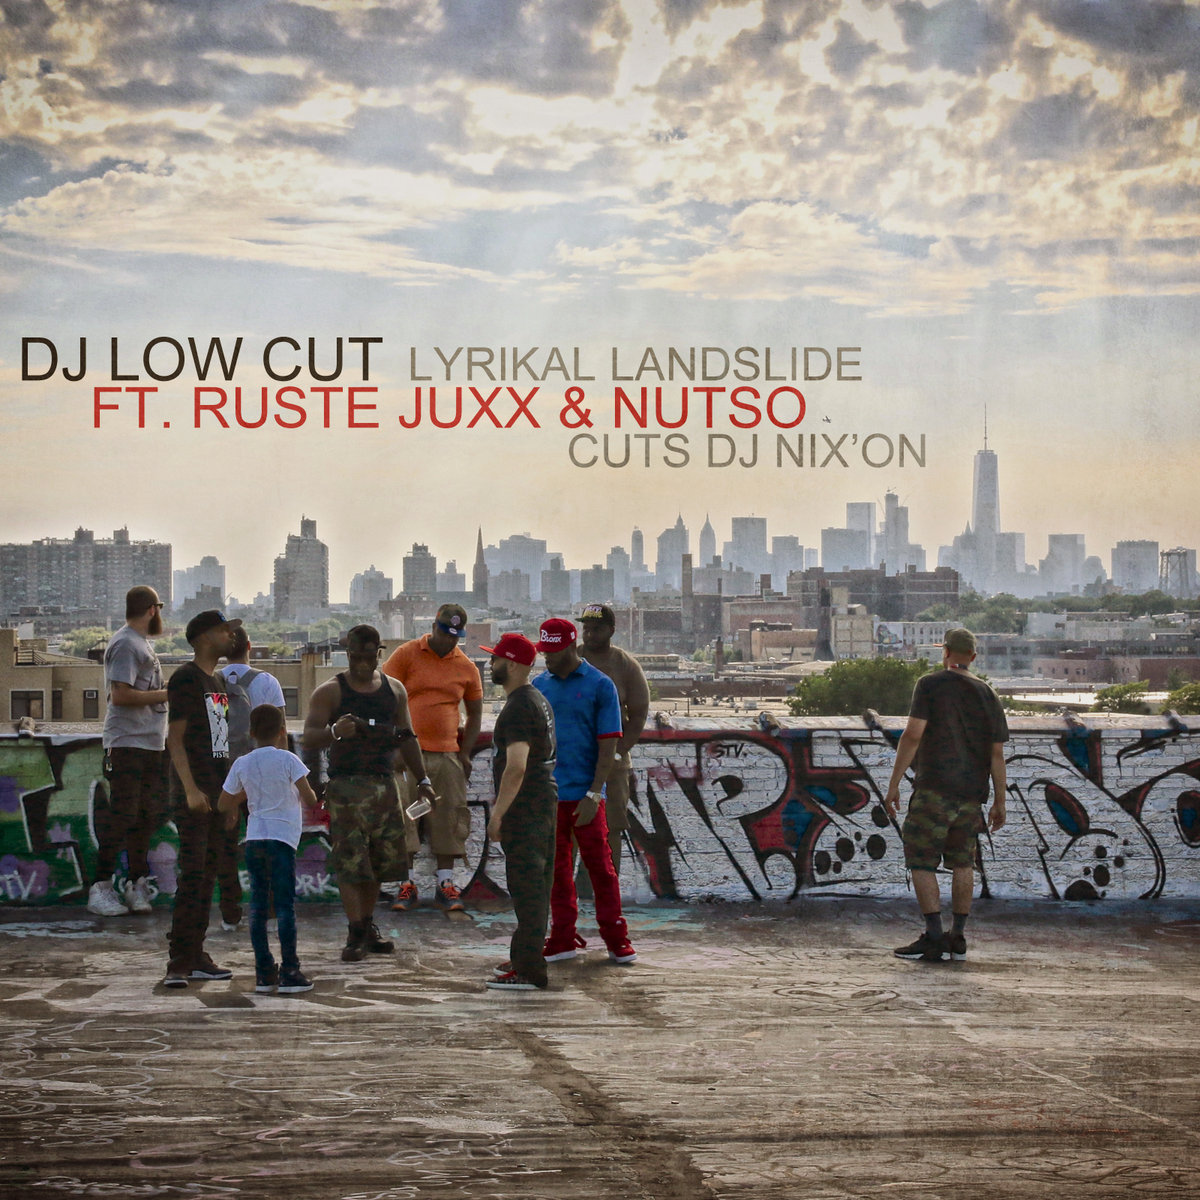 Low Cut feat Ruste Juxx & Nutso